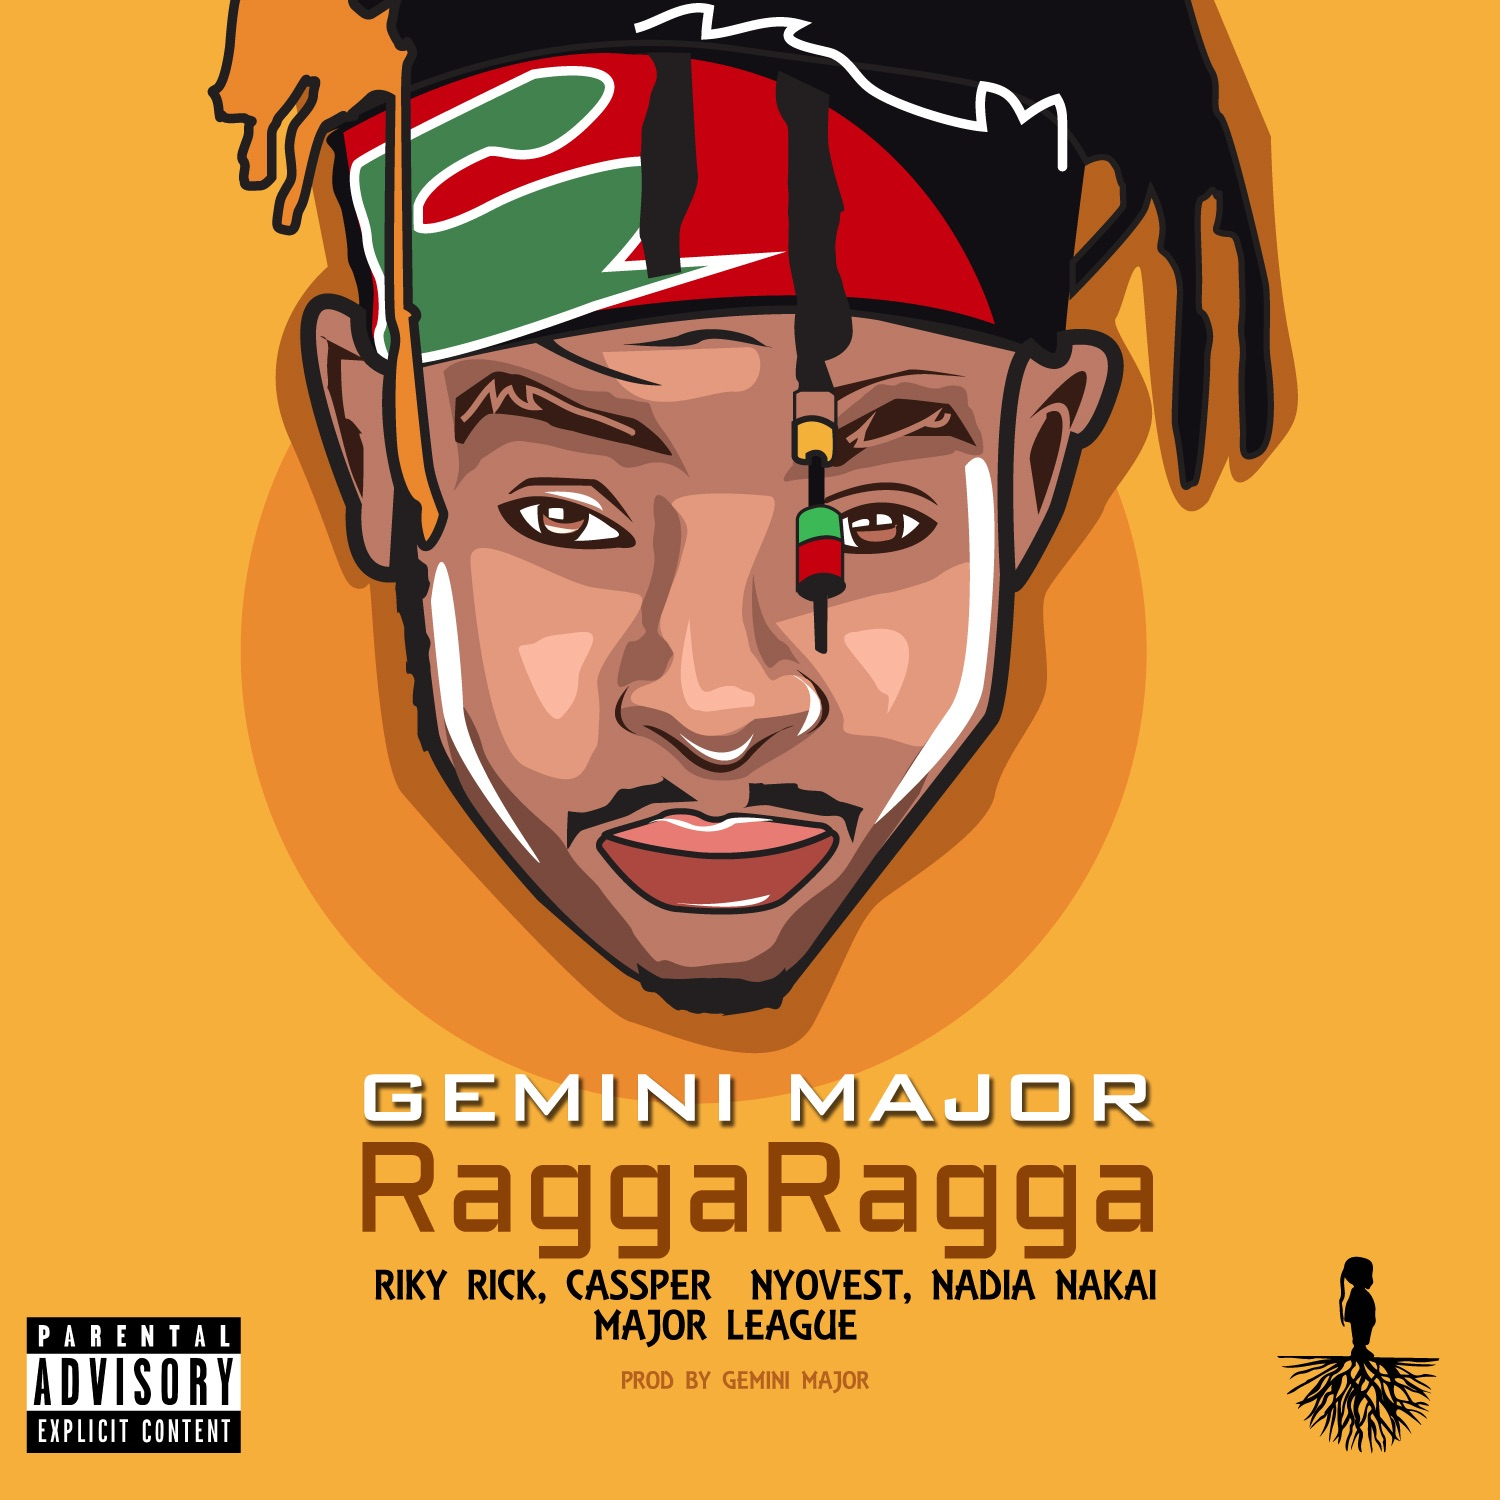 Ragga Ragga (feat. Cassper Nyovest, Nadia Nakai, Riky Rick & Major League) - Single